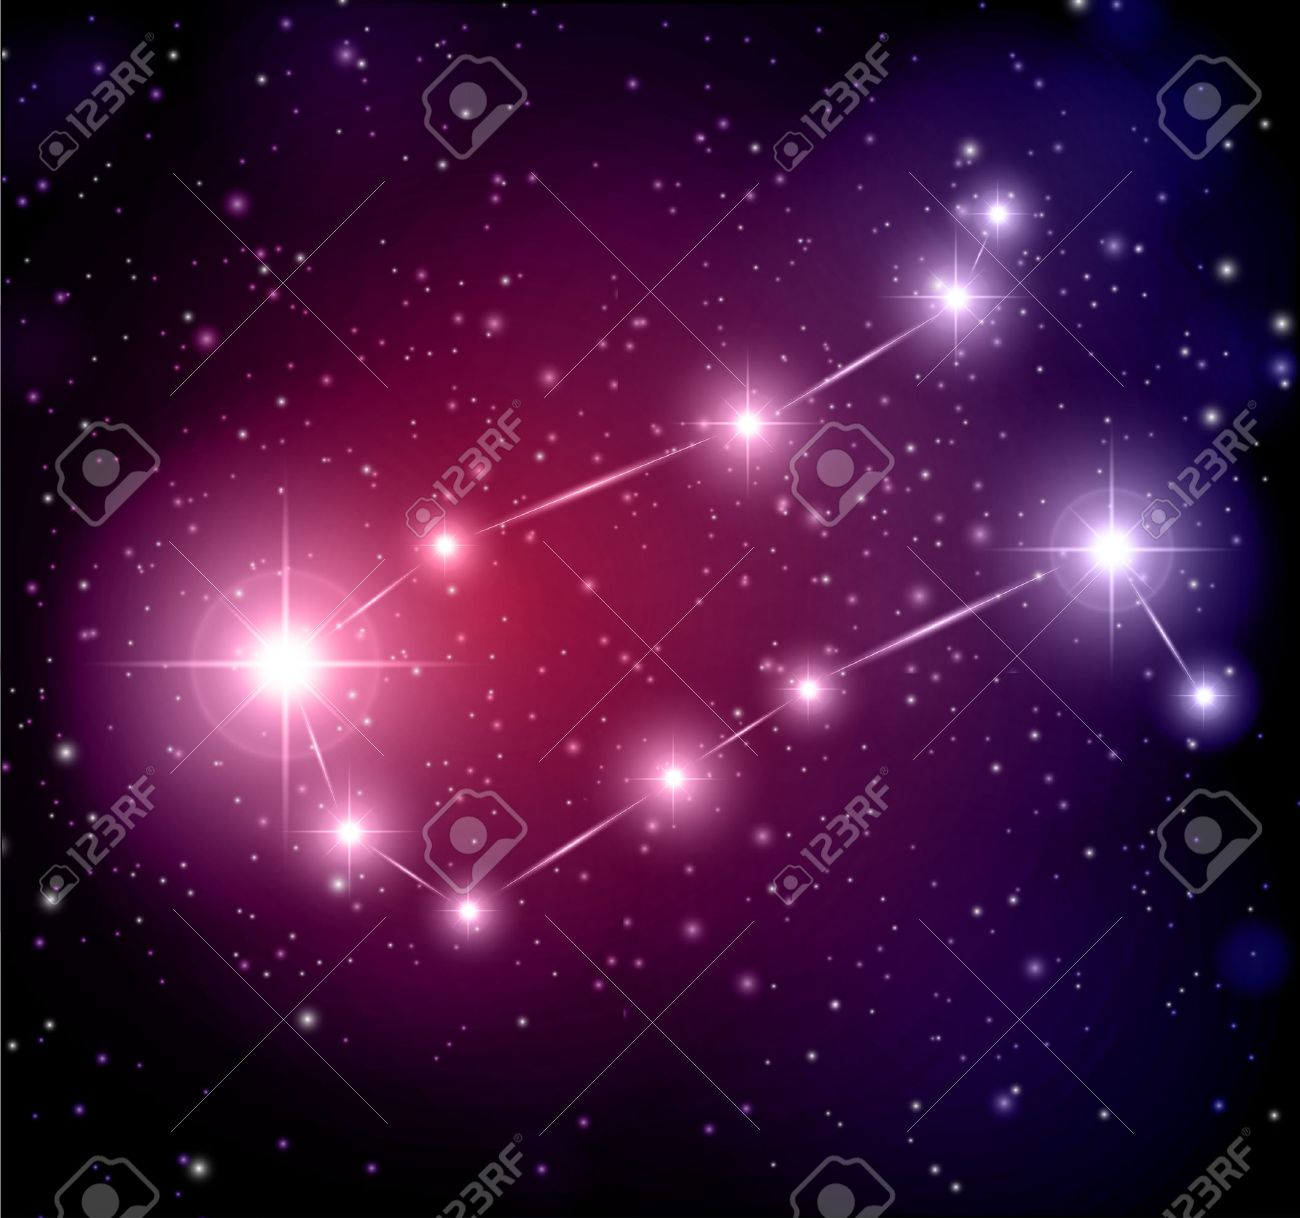 abstract space background with stars and Gemini constellation Stock Vector - 14305676